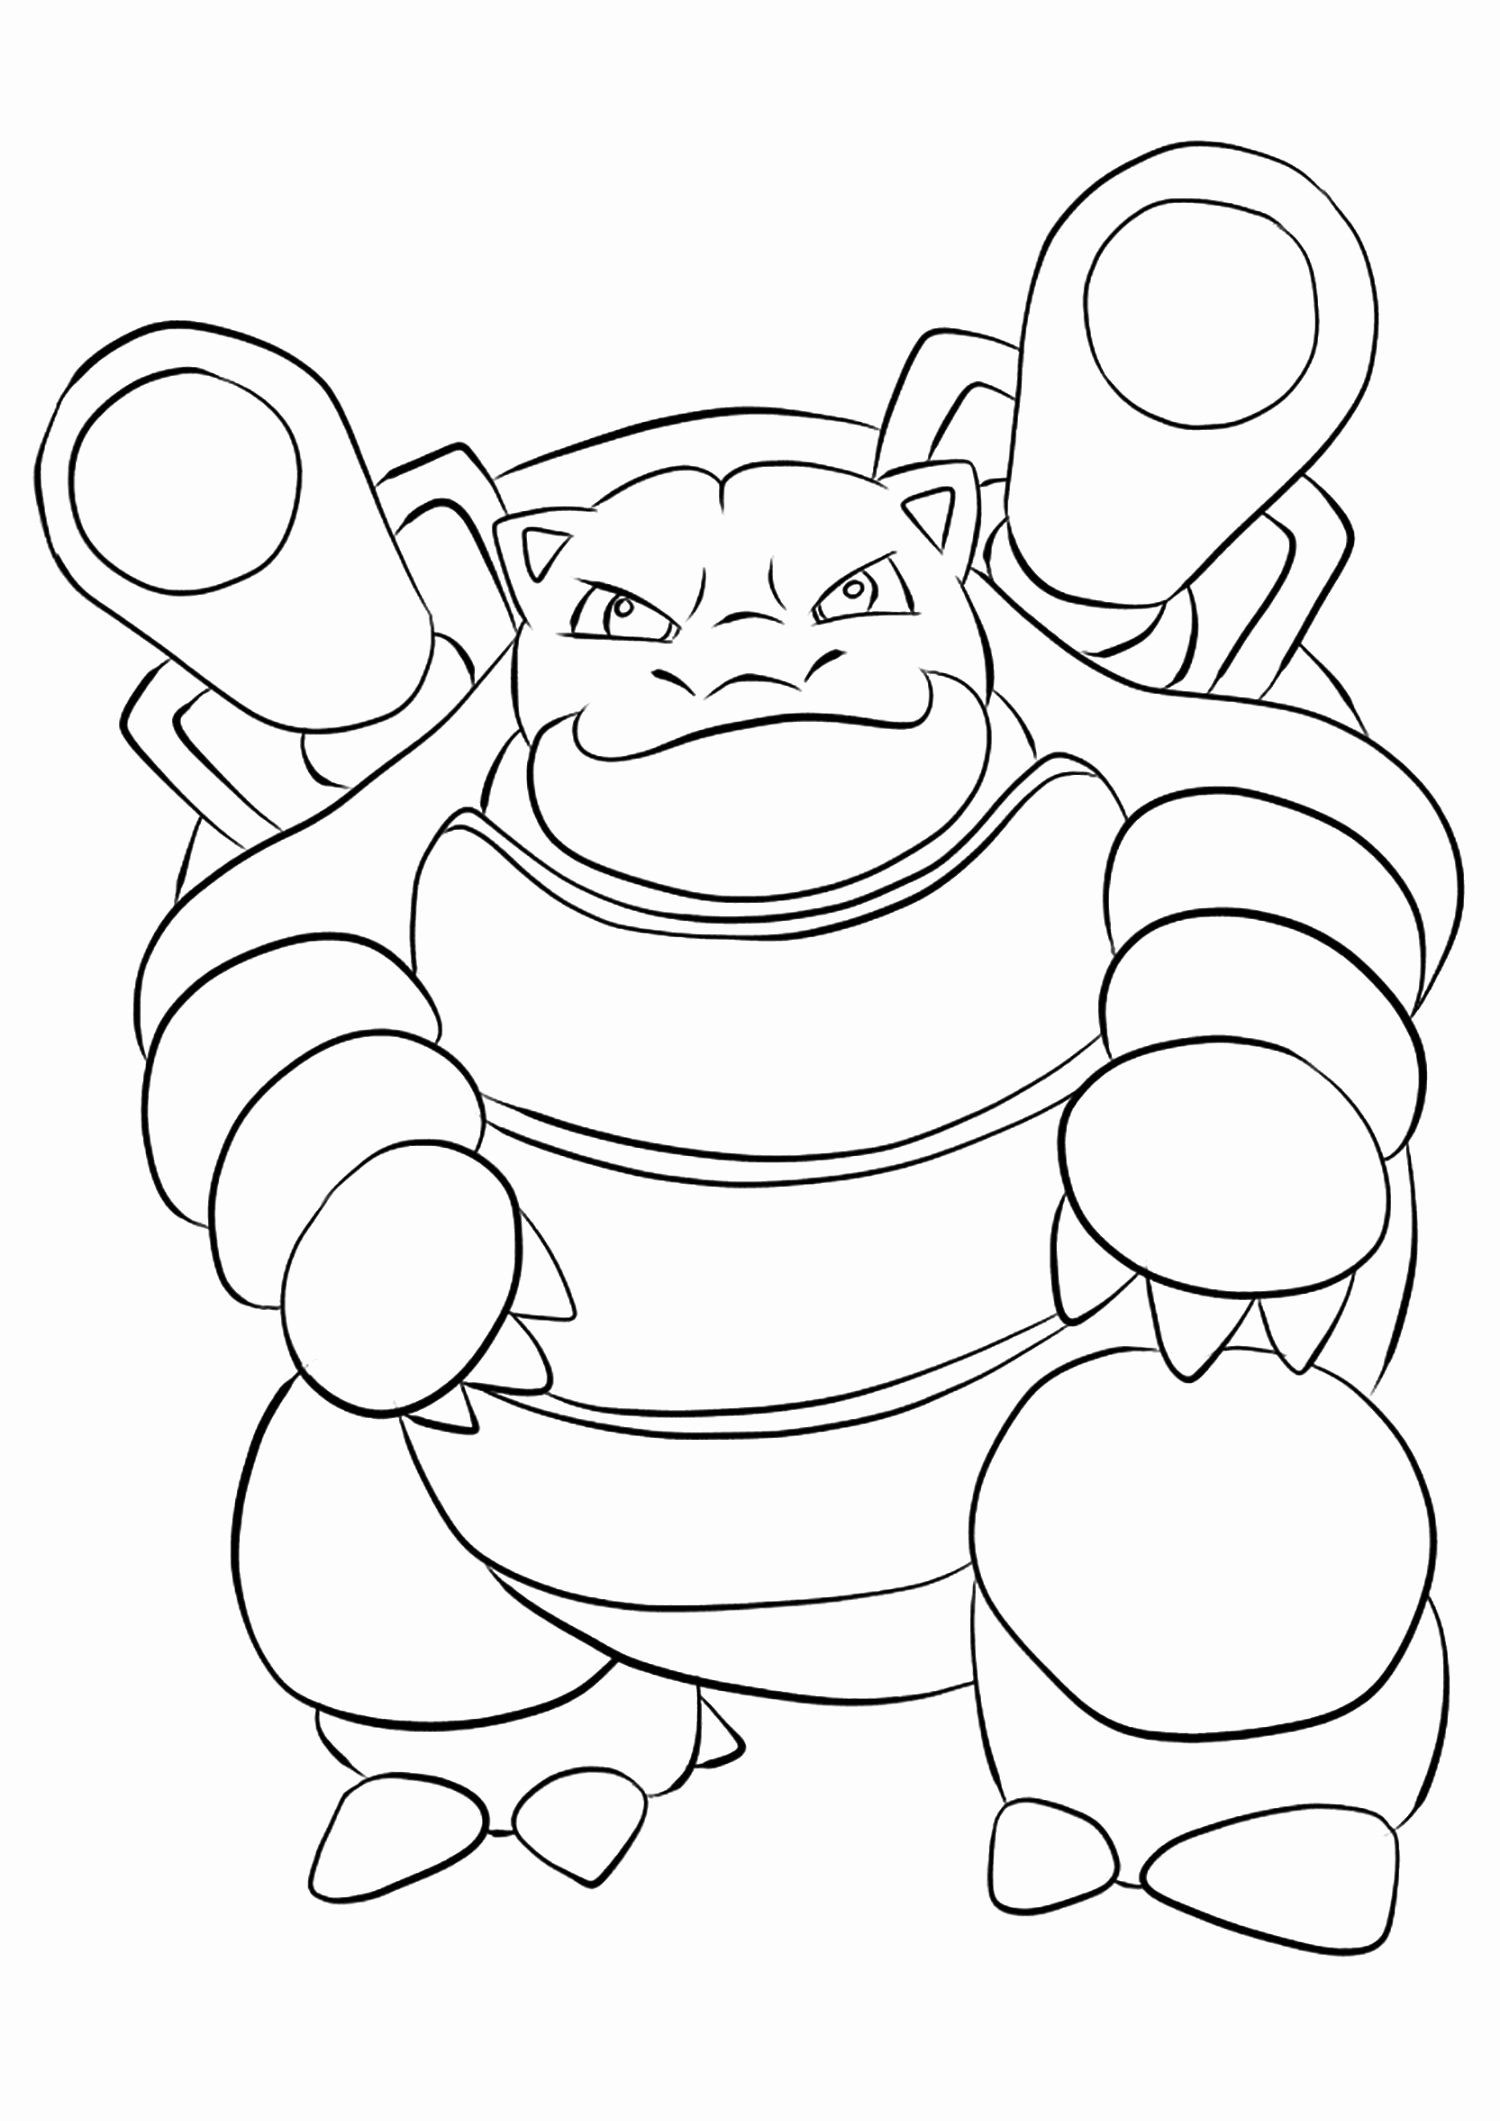 Pokemon Coloring Pages Mega Blastoise : pokemon, coloring, pages, blastoise, Blastoise, Coloring, Pokemon, Pages, Pages,, Coloring,, Inspirational